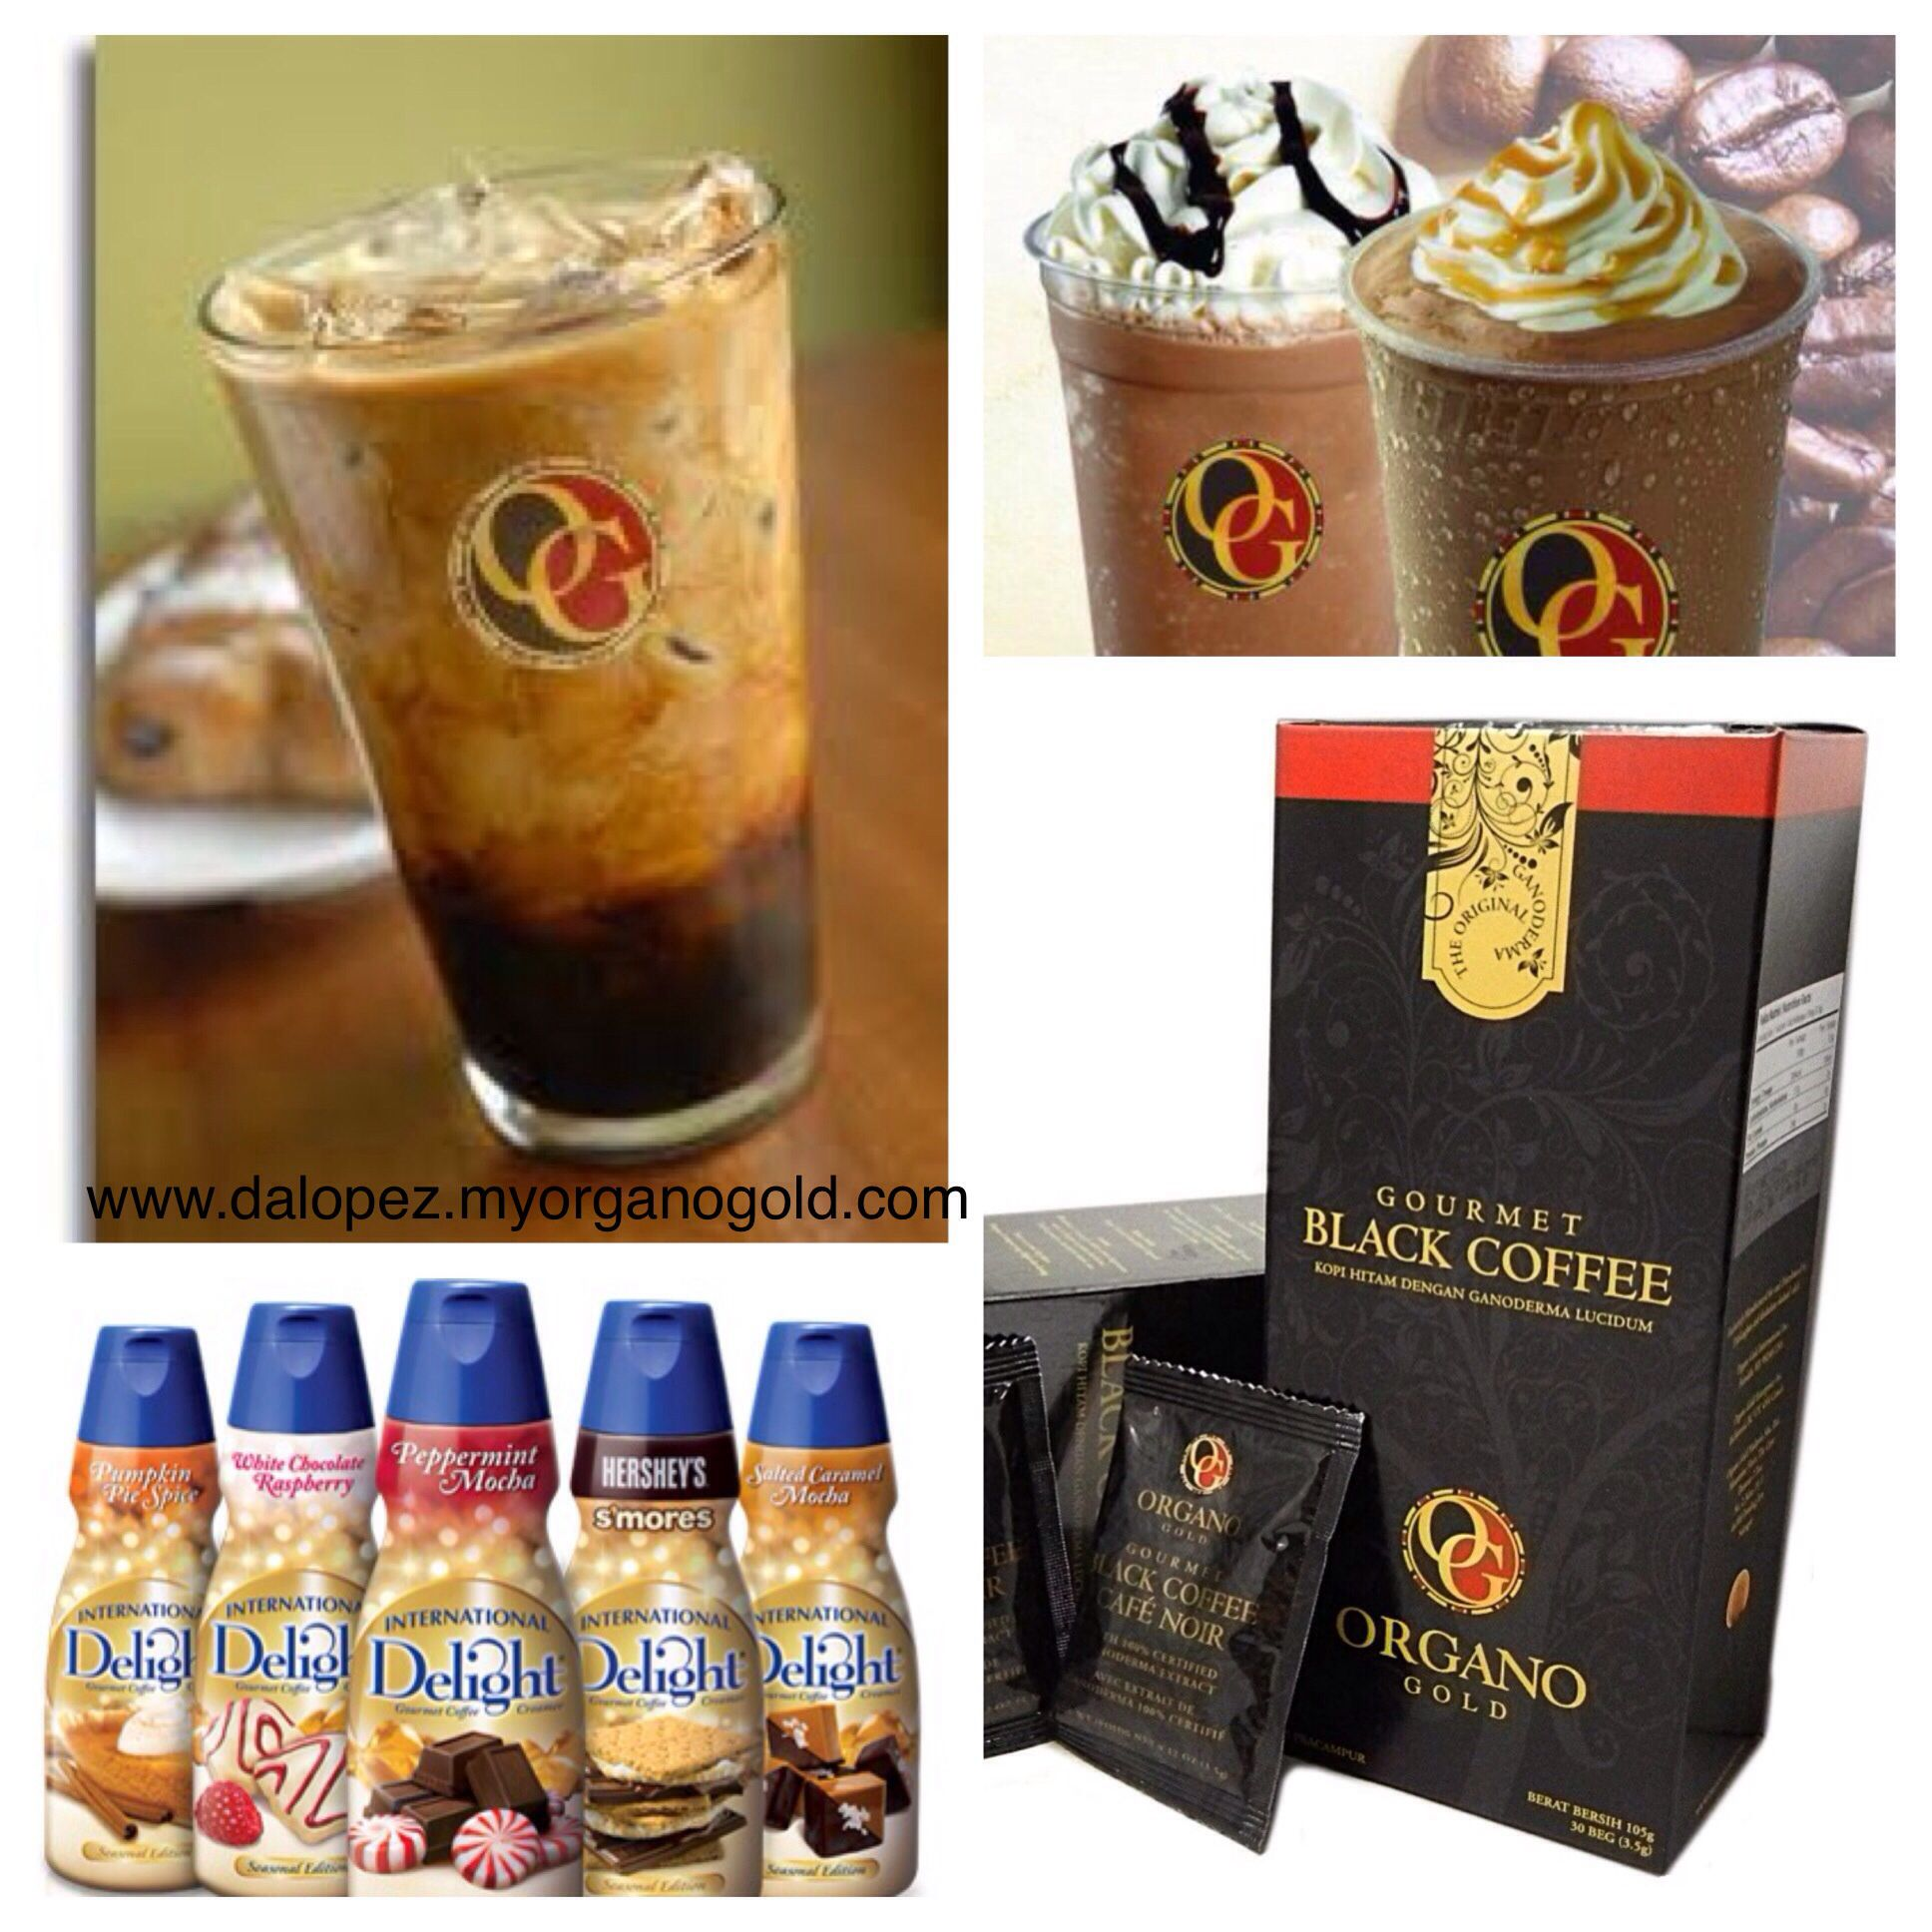 Iced coffee 1 packet of og black coffee in 12 oz glass